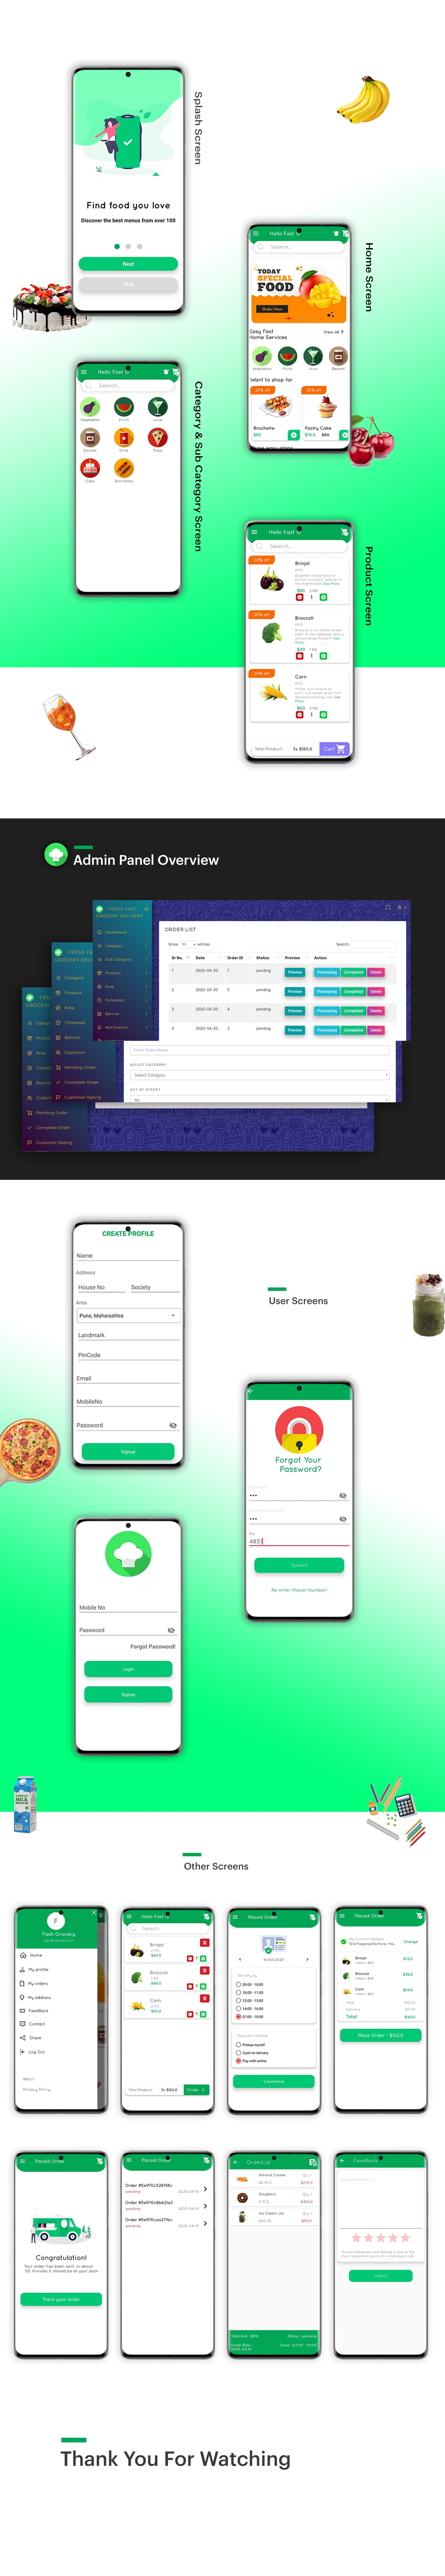 Fresh Fast Grocery Delivery Android App with Interactive Admin Panel v1.2 - 2